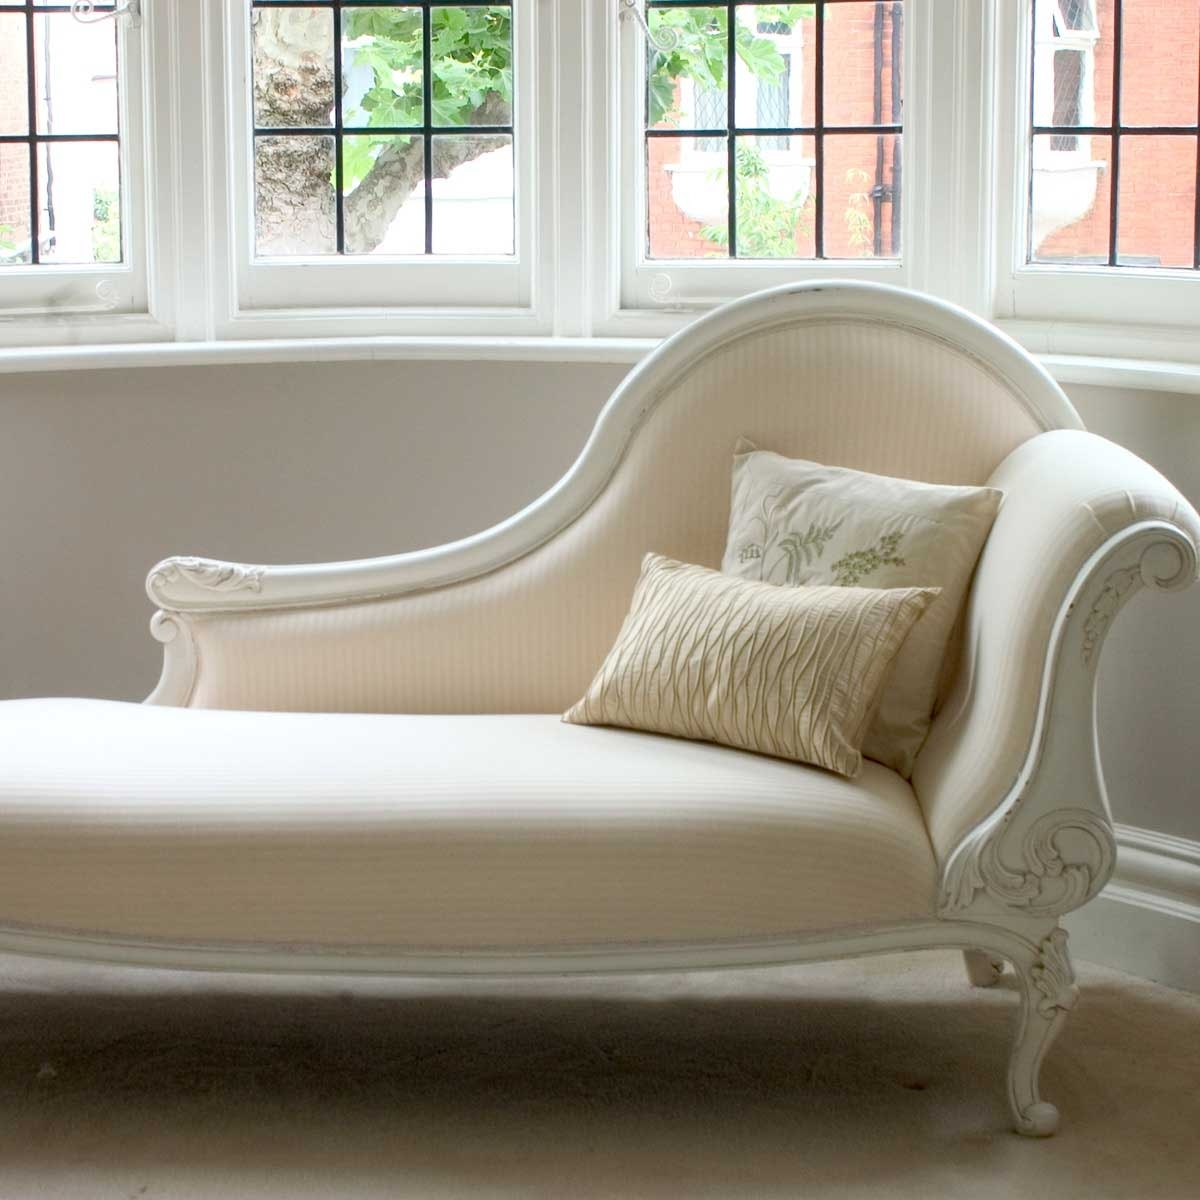 2018 Latest Chaise Lounges For Bedroom